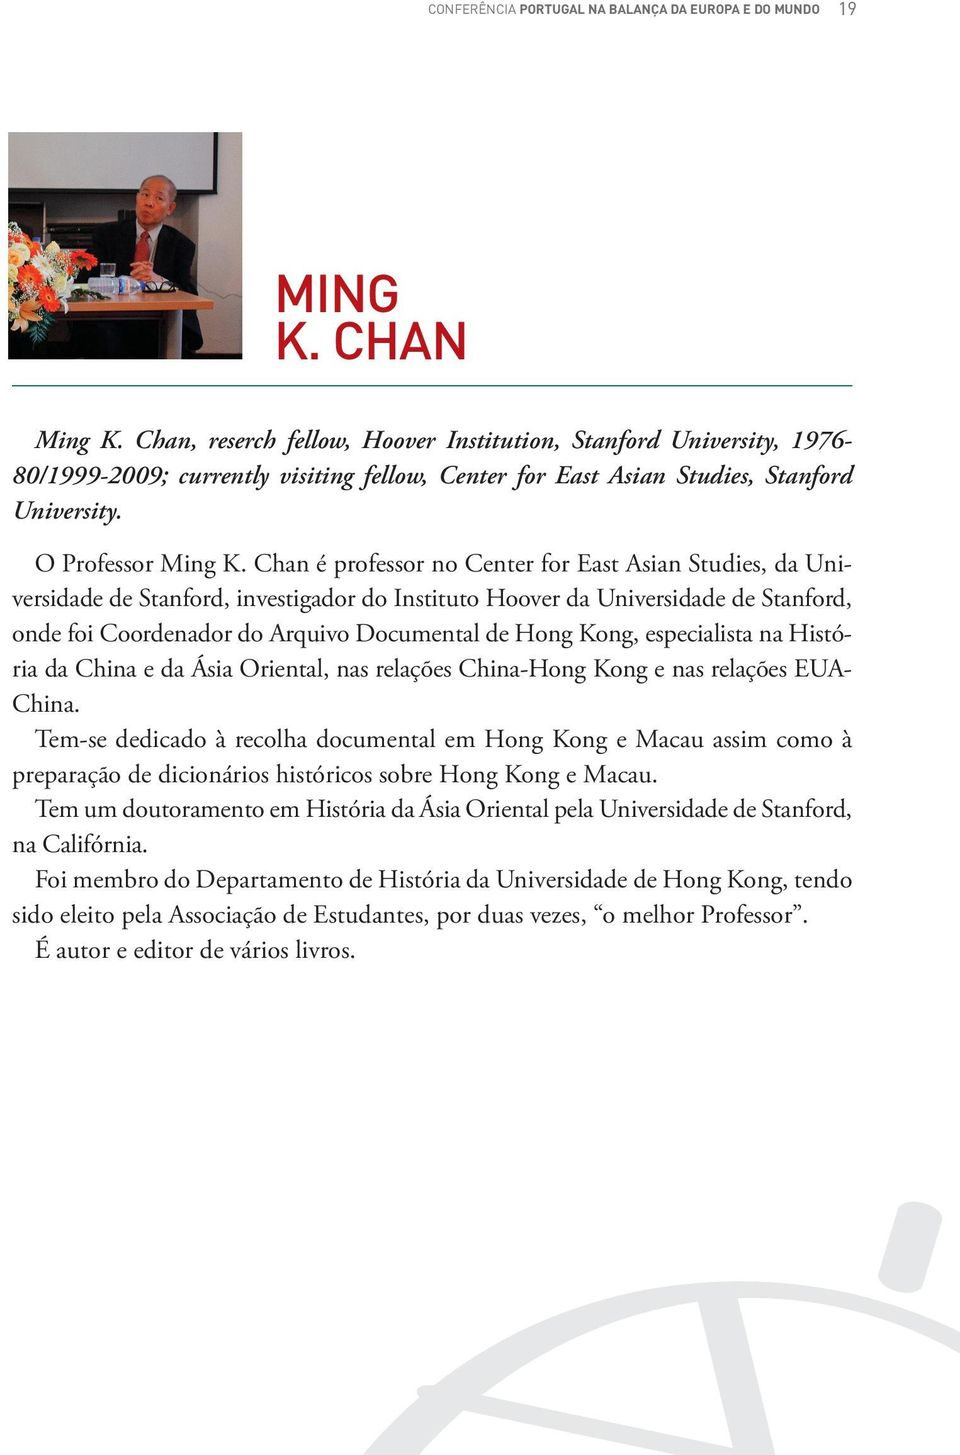 Chan é professor no Center for East Asian Studies, da Universidade de Stanford, investigador do Instituto Hoover da Universidade de Stanford, onde foi Coordenador do Arquivo Documental de Hong Kong,